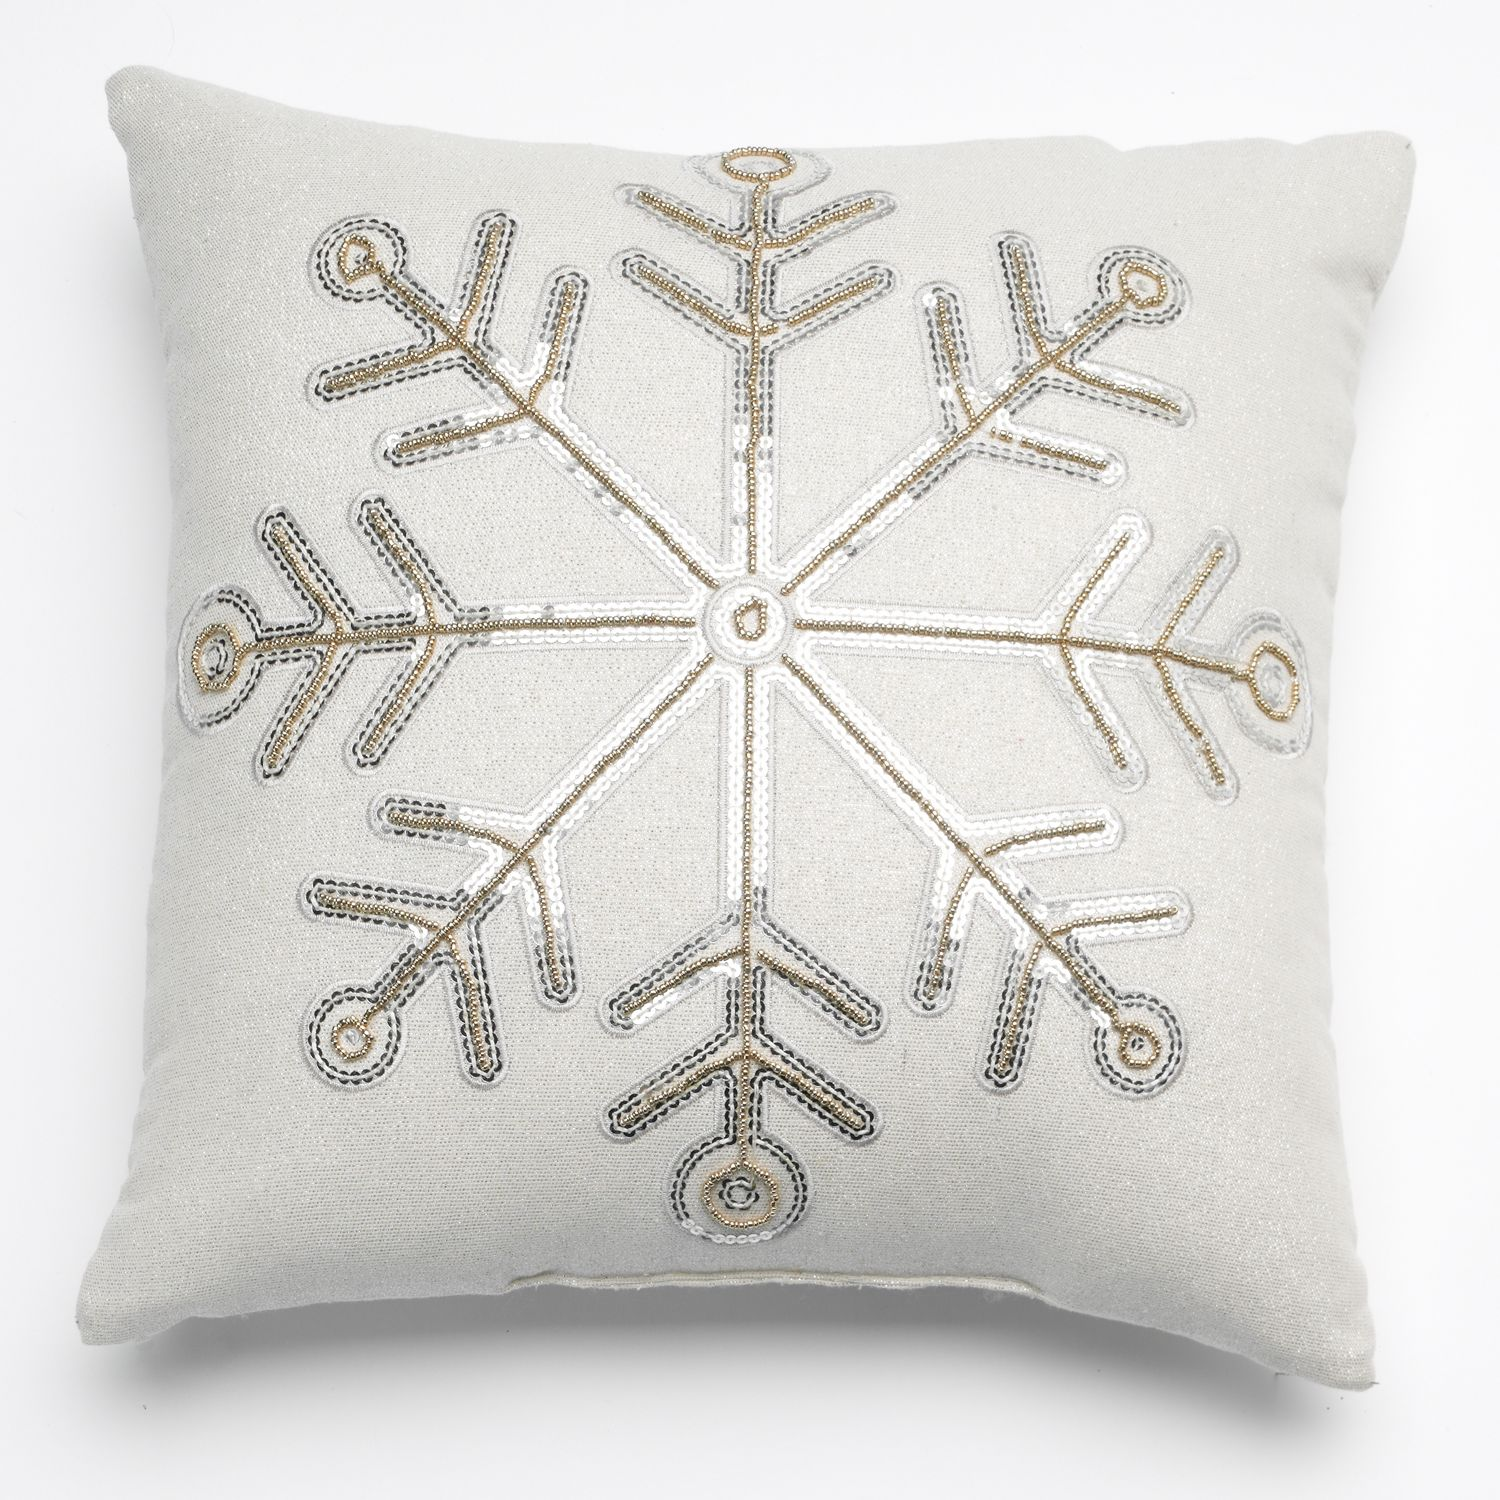 Decorative Pillows At Kohls : St. Nicholas Square Christmas Snowflake Decorative Pillow - $1...